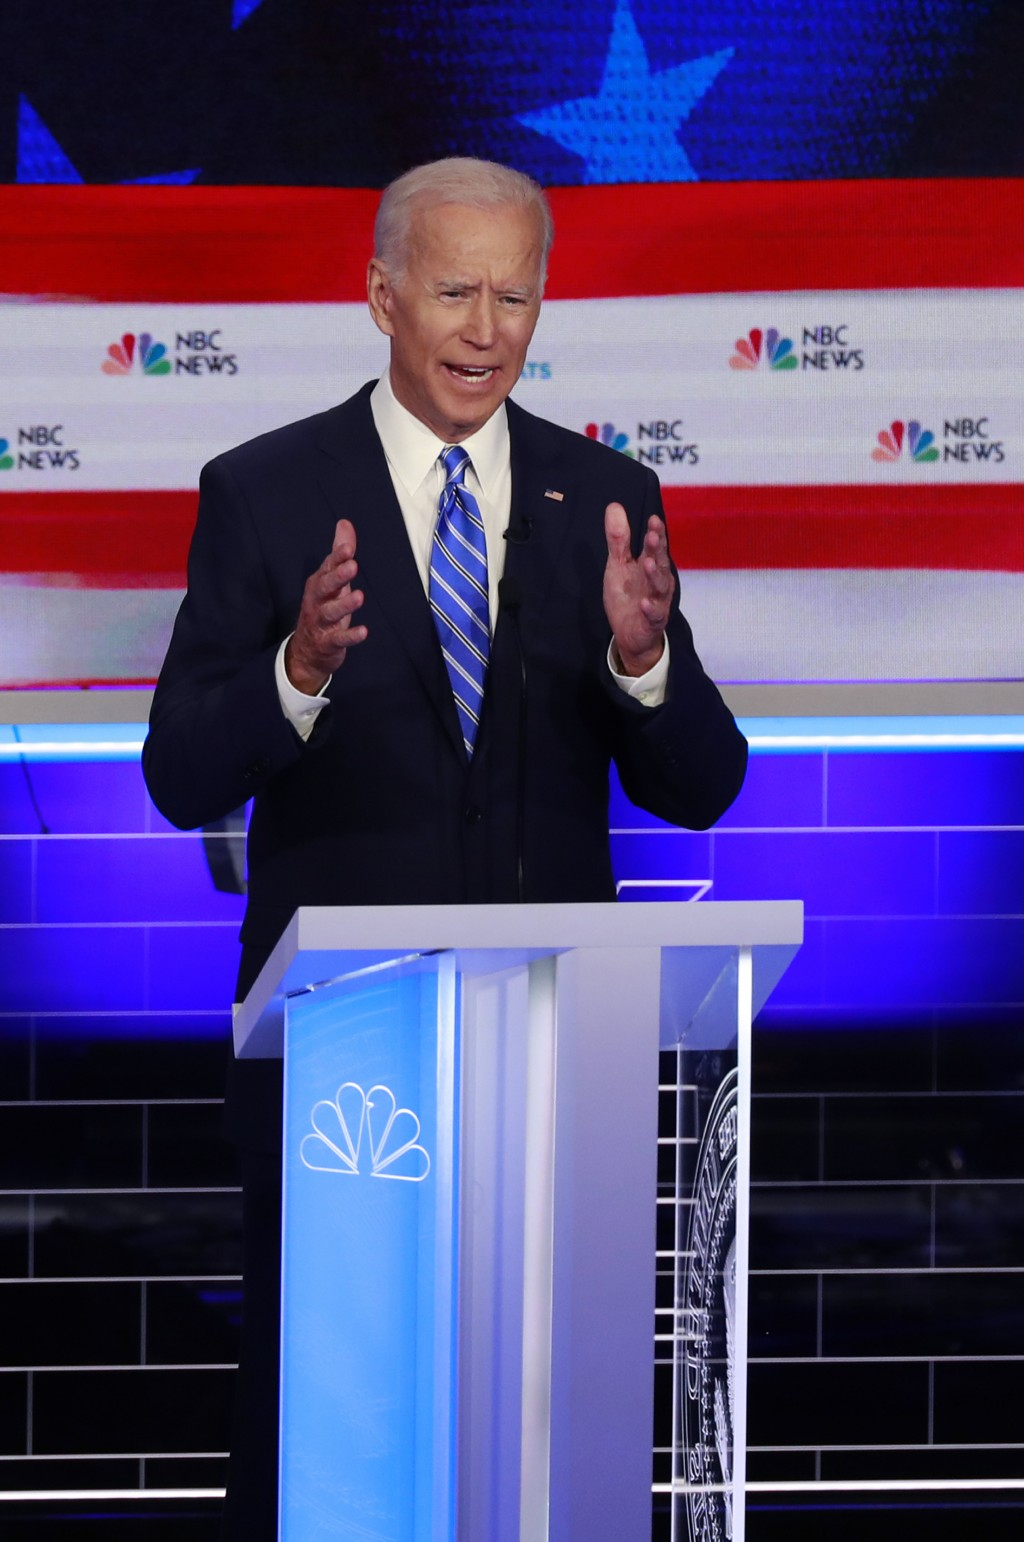 Democratic presidential candidate former vice president Joe Biden, speaks during the Democratic primary debate hosted by NBC News at the Adrienne Arsh...